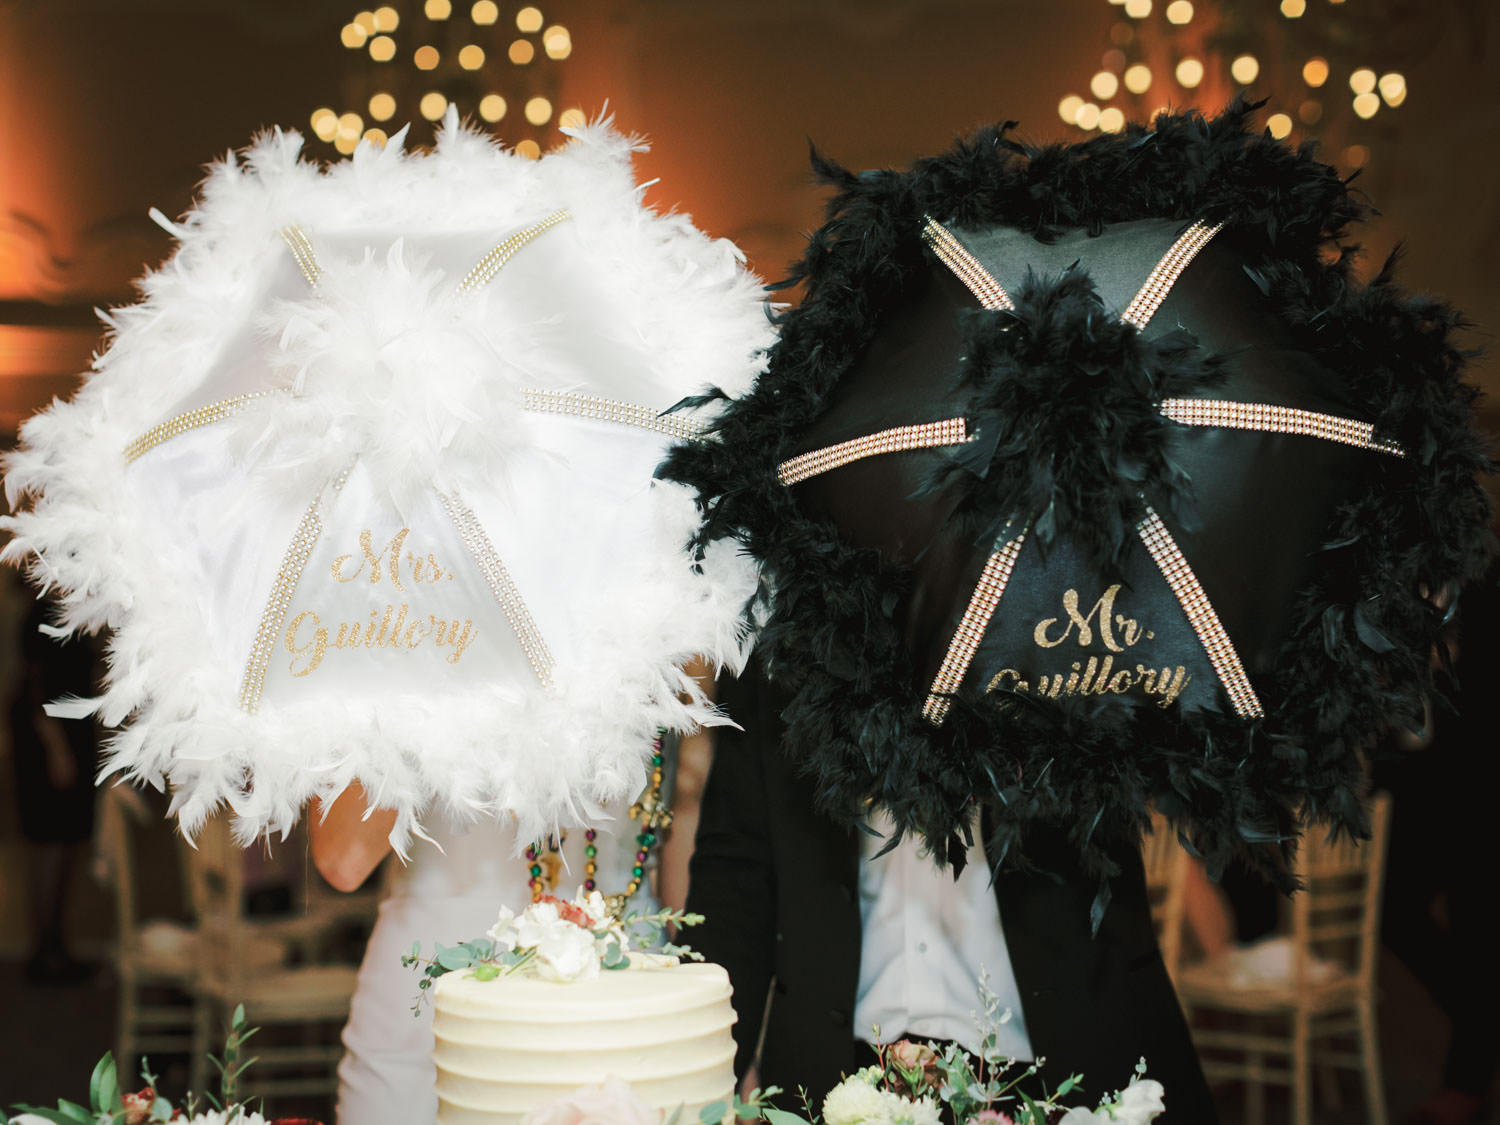 Bride and groom holding custom feather umbrellas for the New Orleans second line. Hotel Del Wedding reception by Cavin Elizabeth.